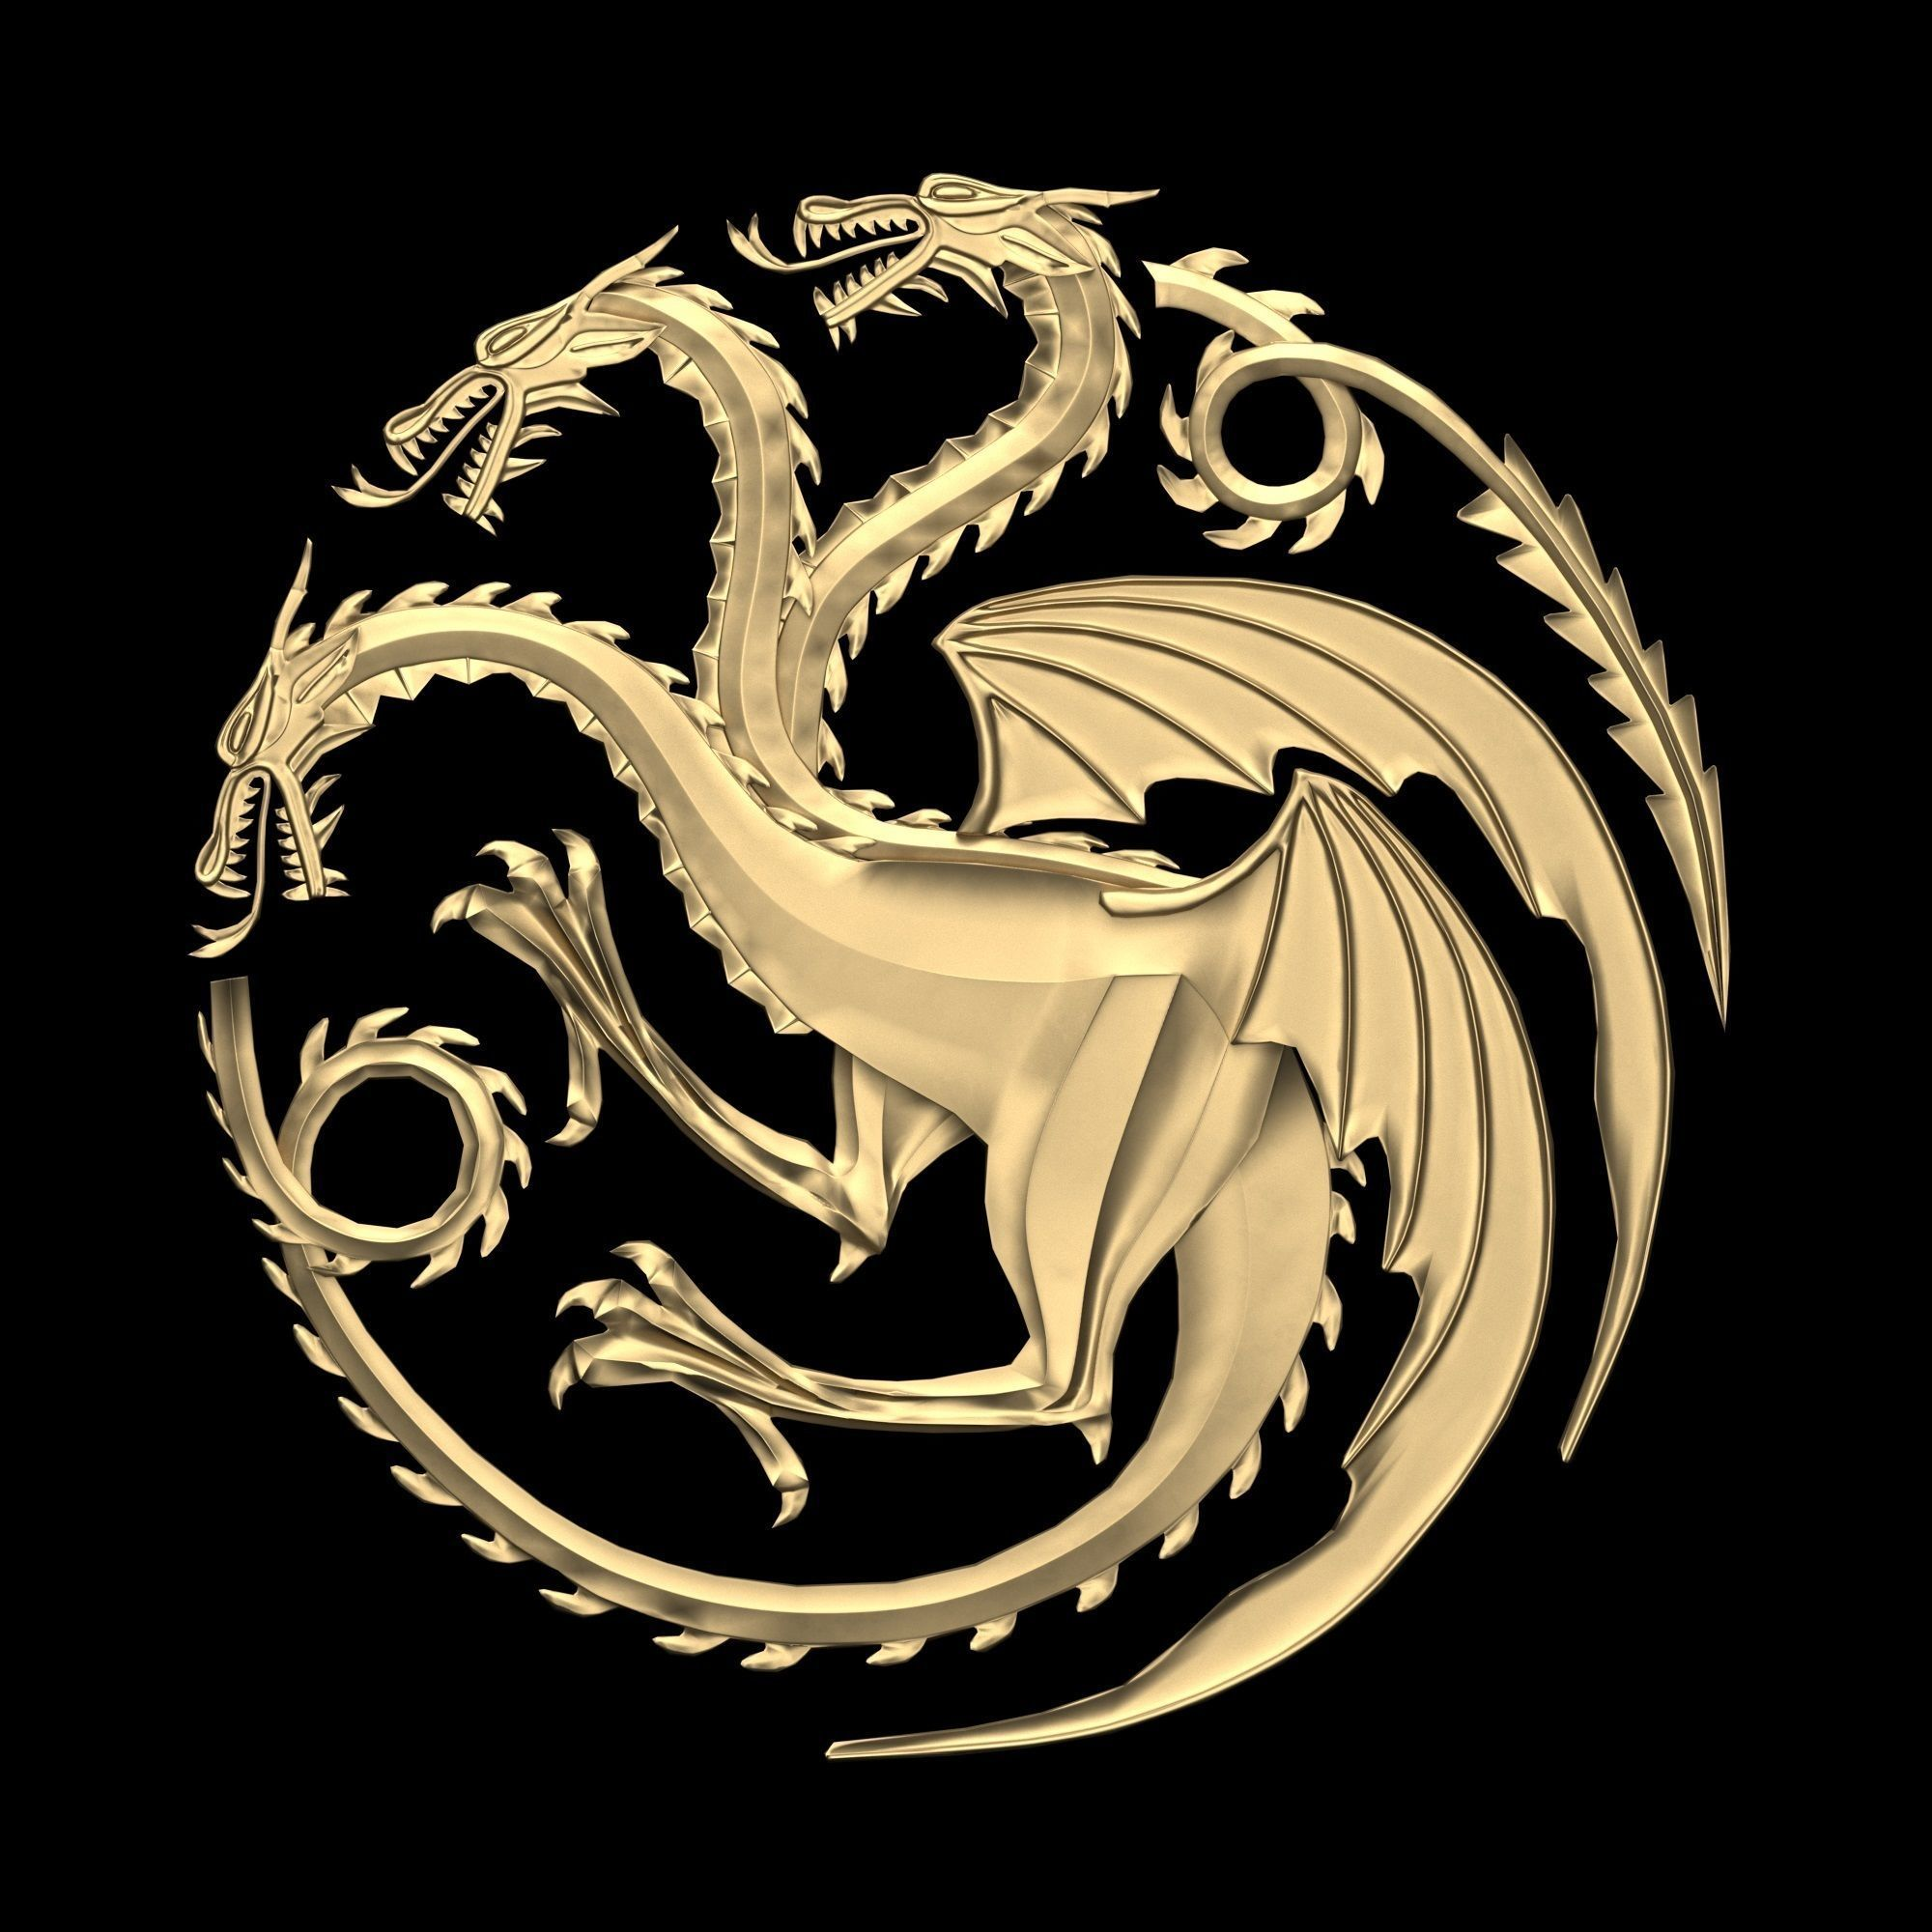 Game of Thrones - House Targaryen sigil Low poly